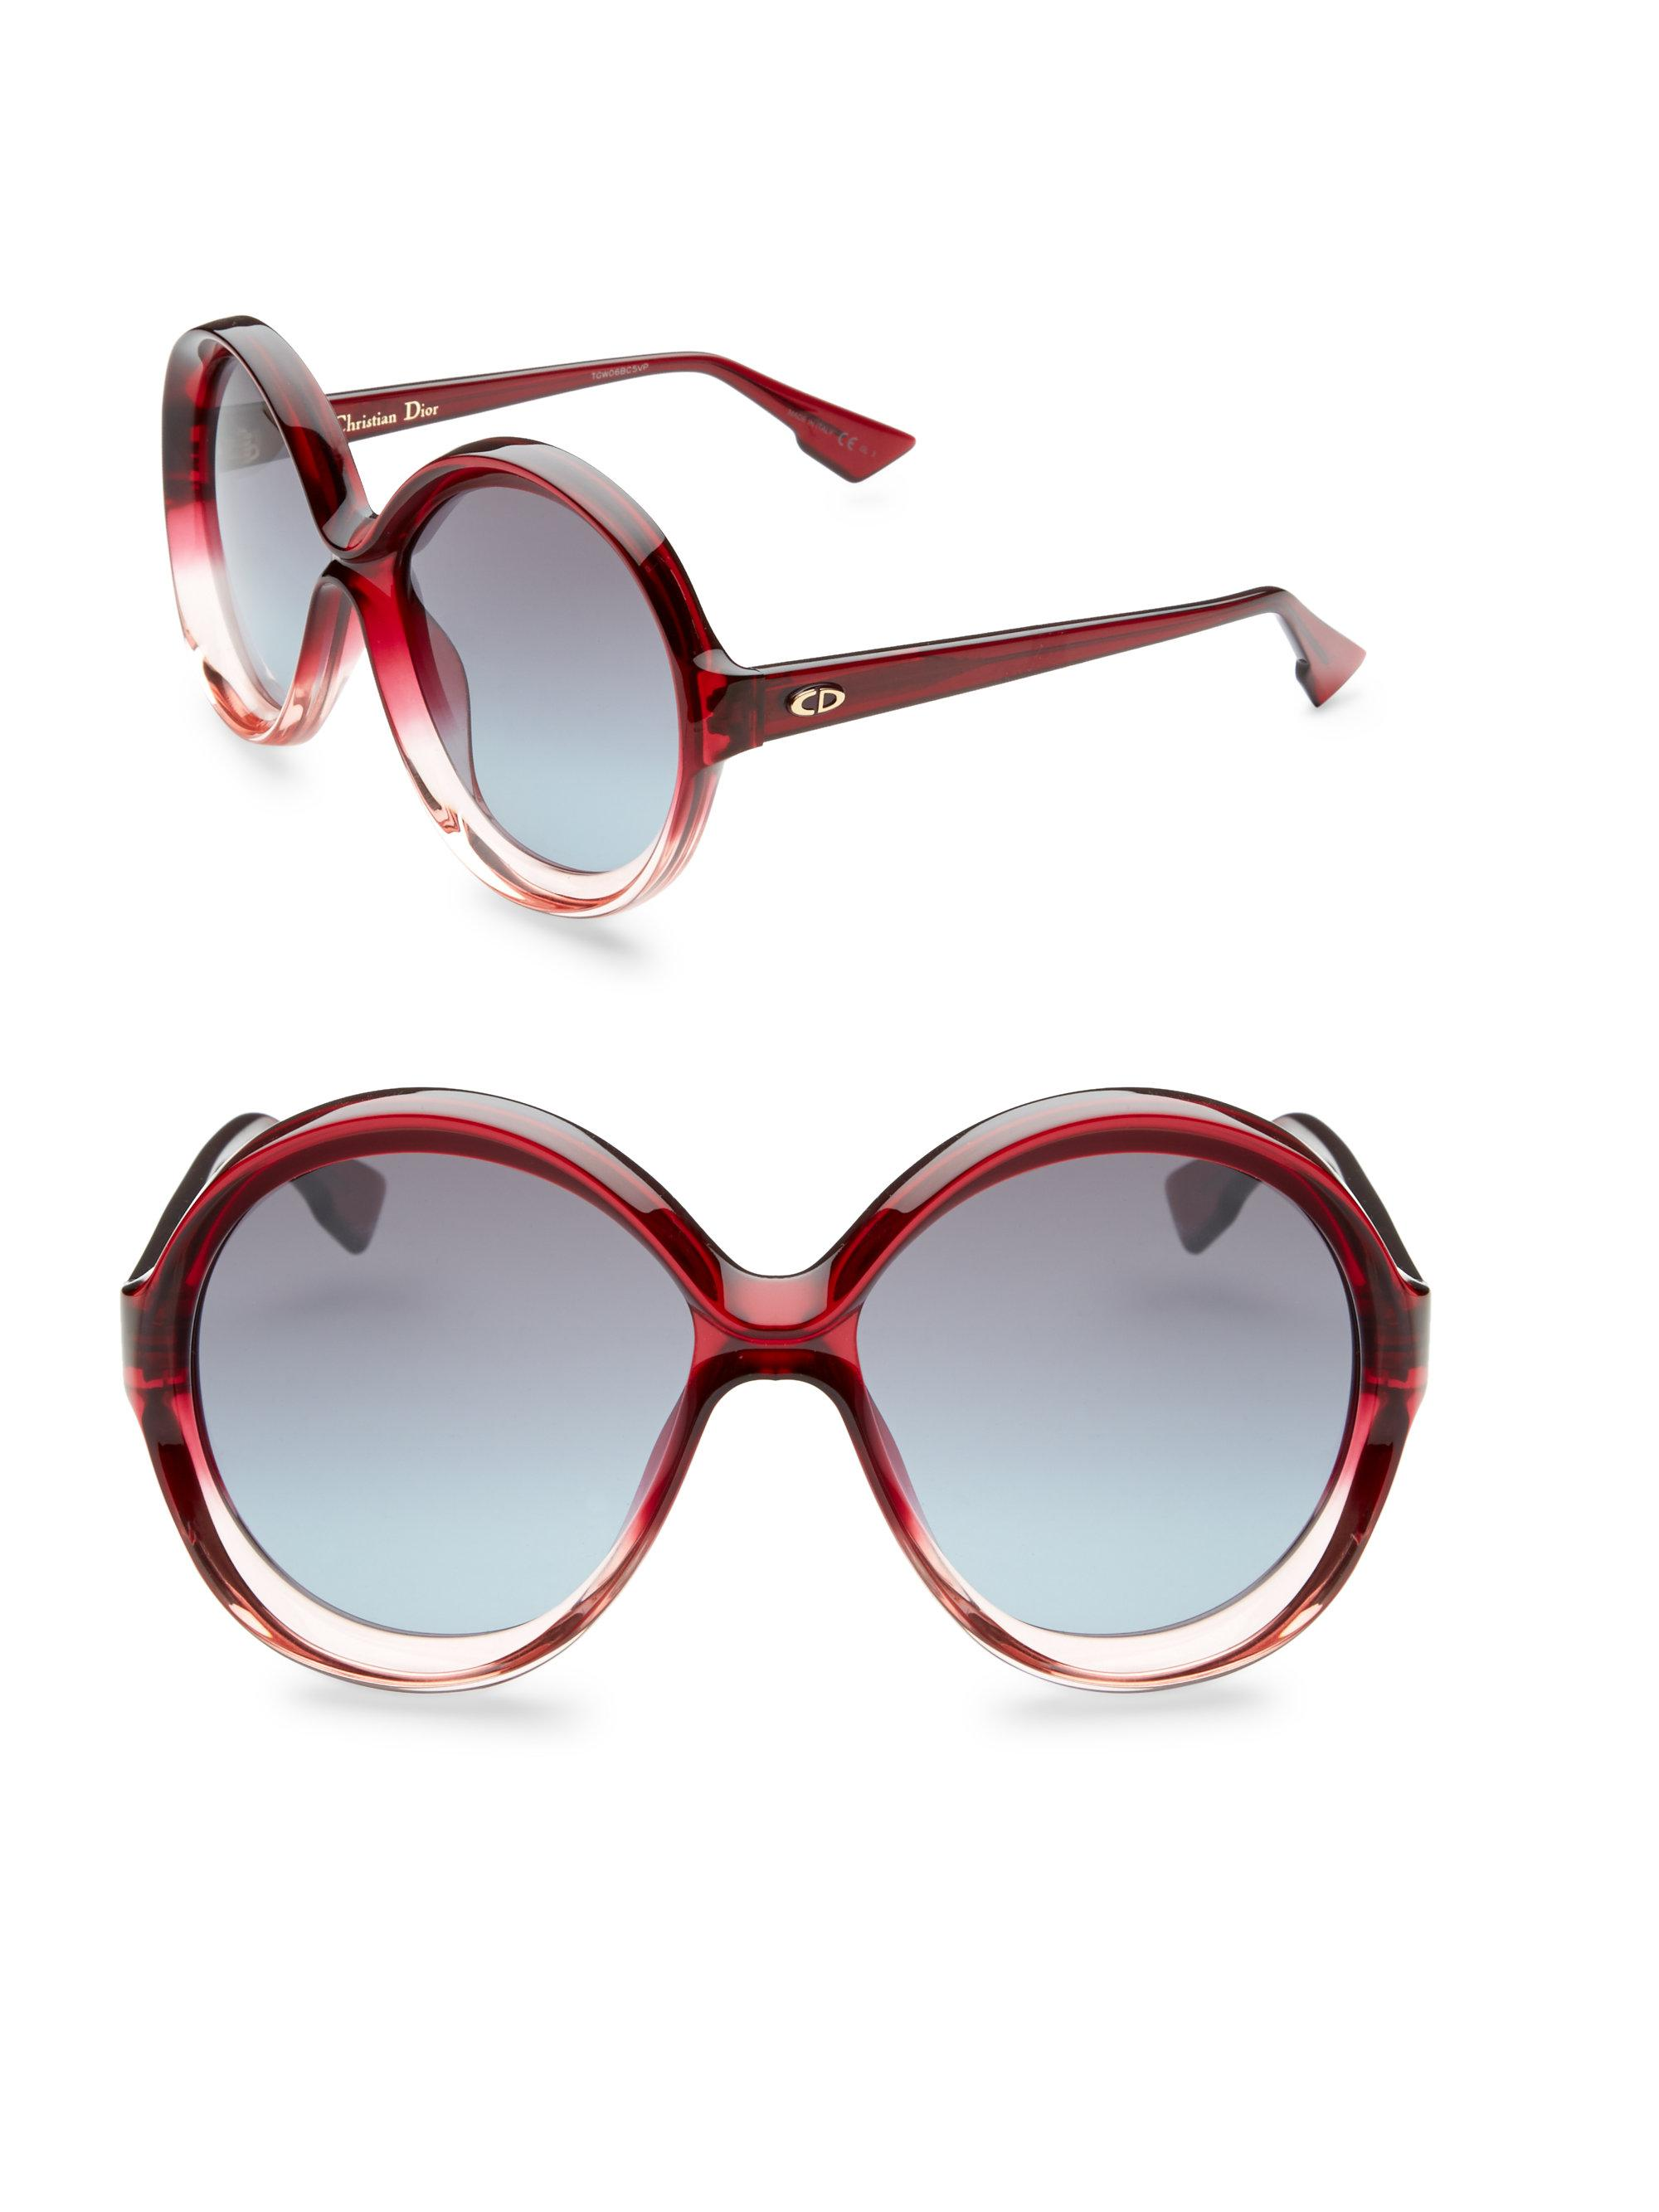 e9ff60bc69 Dior Bianca 58mm Round Sunglasses in Pink - Lyst